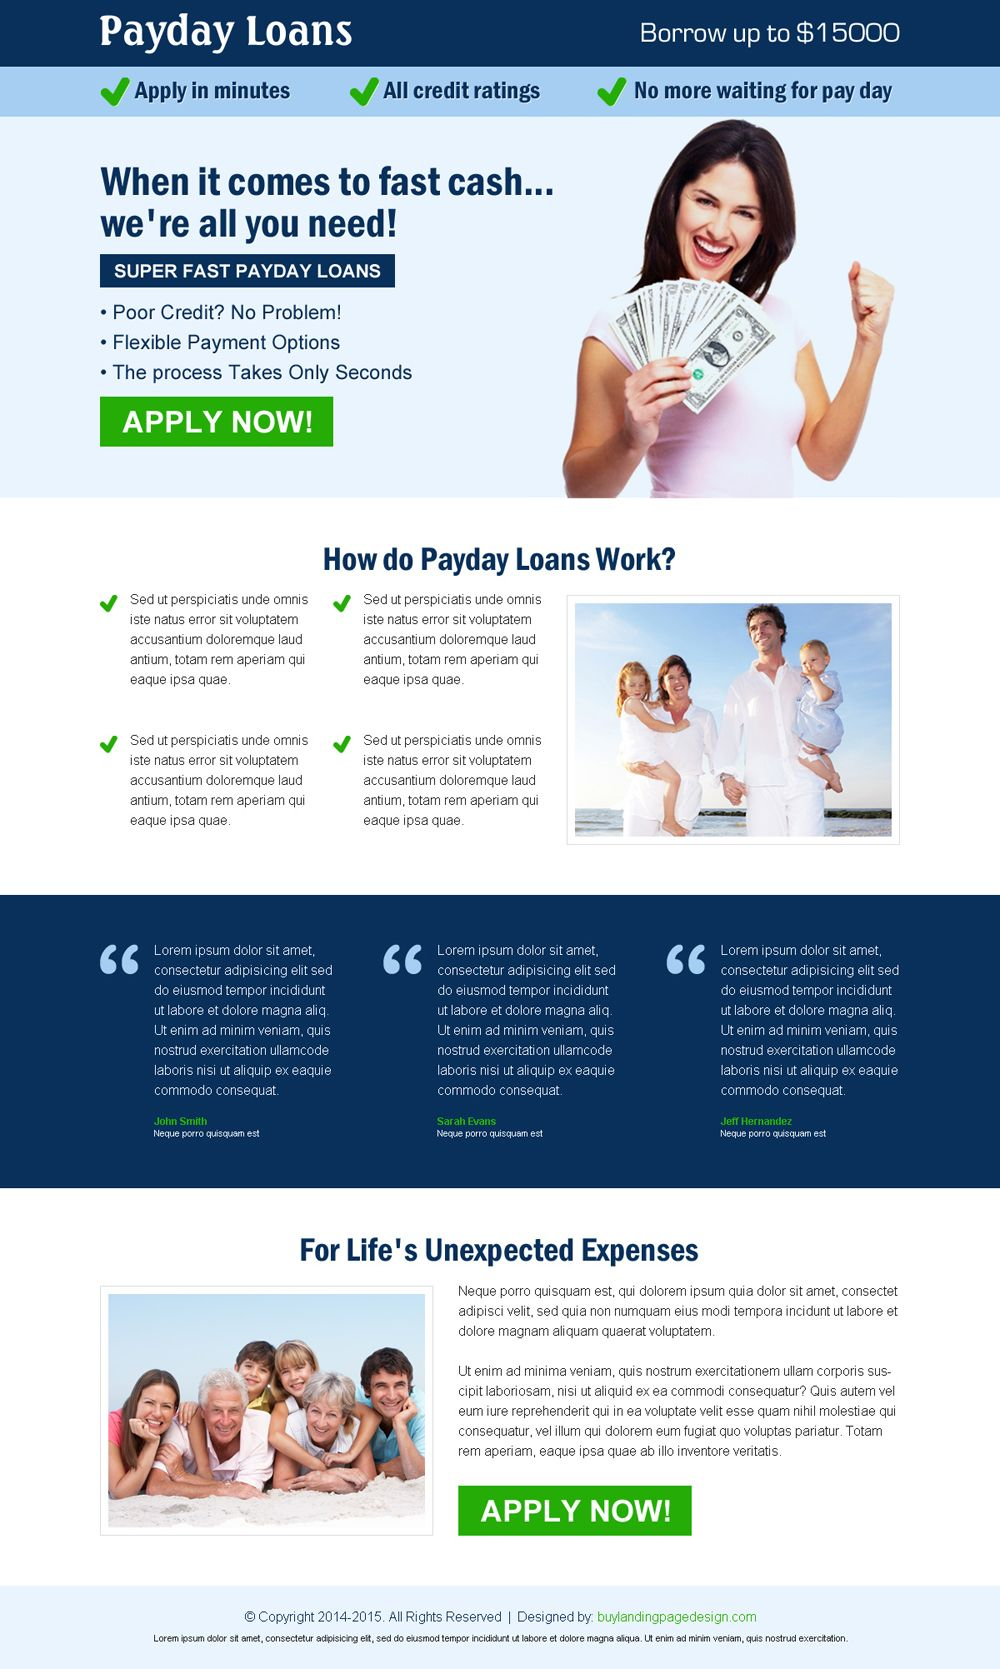 super fast payday loan apply now call to action landing